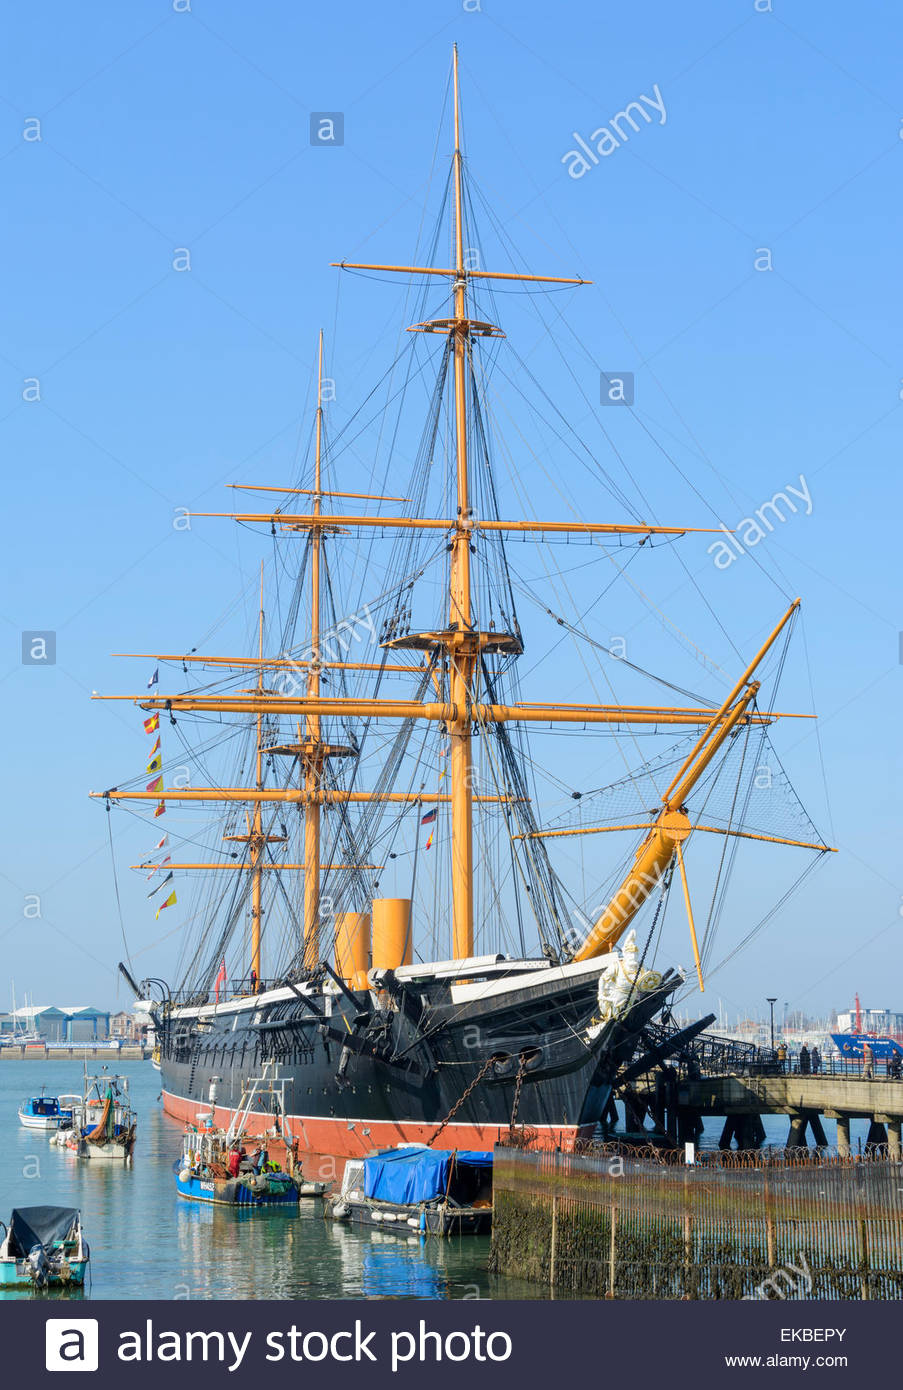 HMS Warrior ship in the docks in Portsmouth Harbour, Portsmouth, Hampshire, England, UK. Old wooden warship. - Stock Image